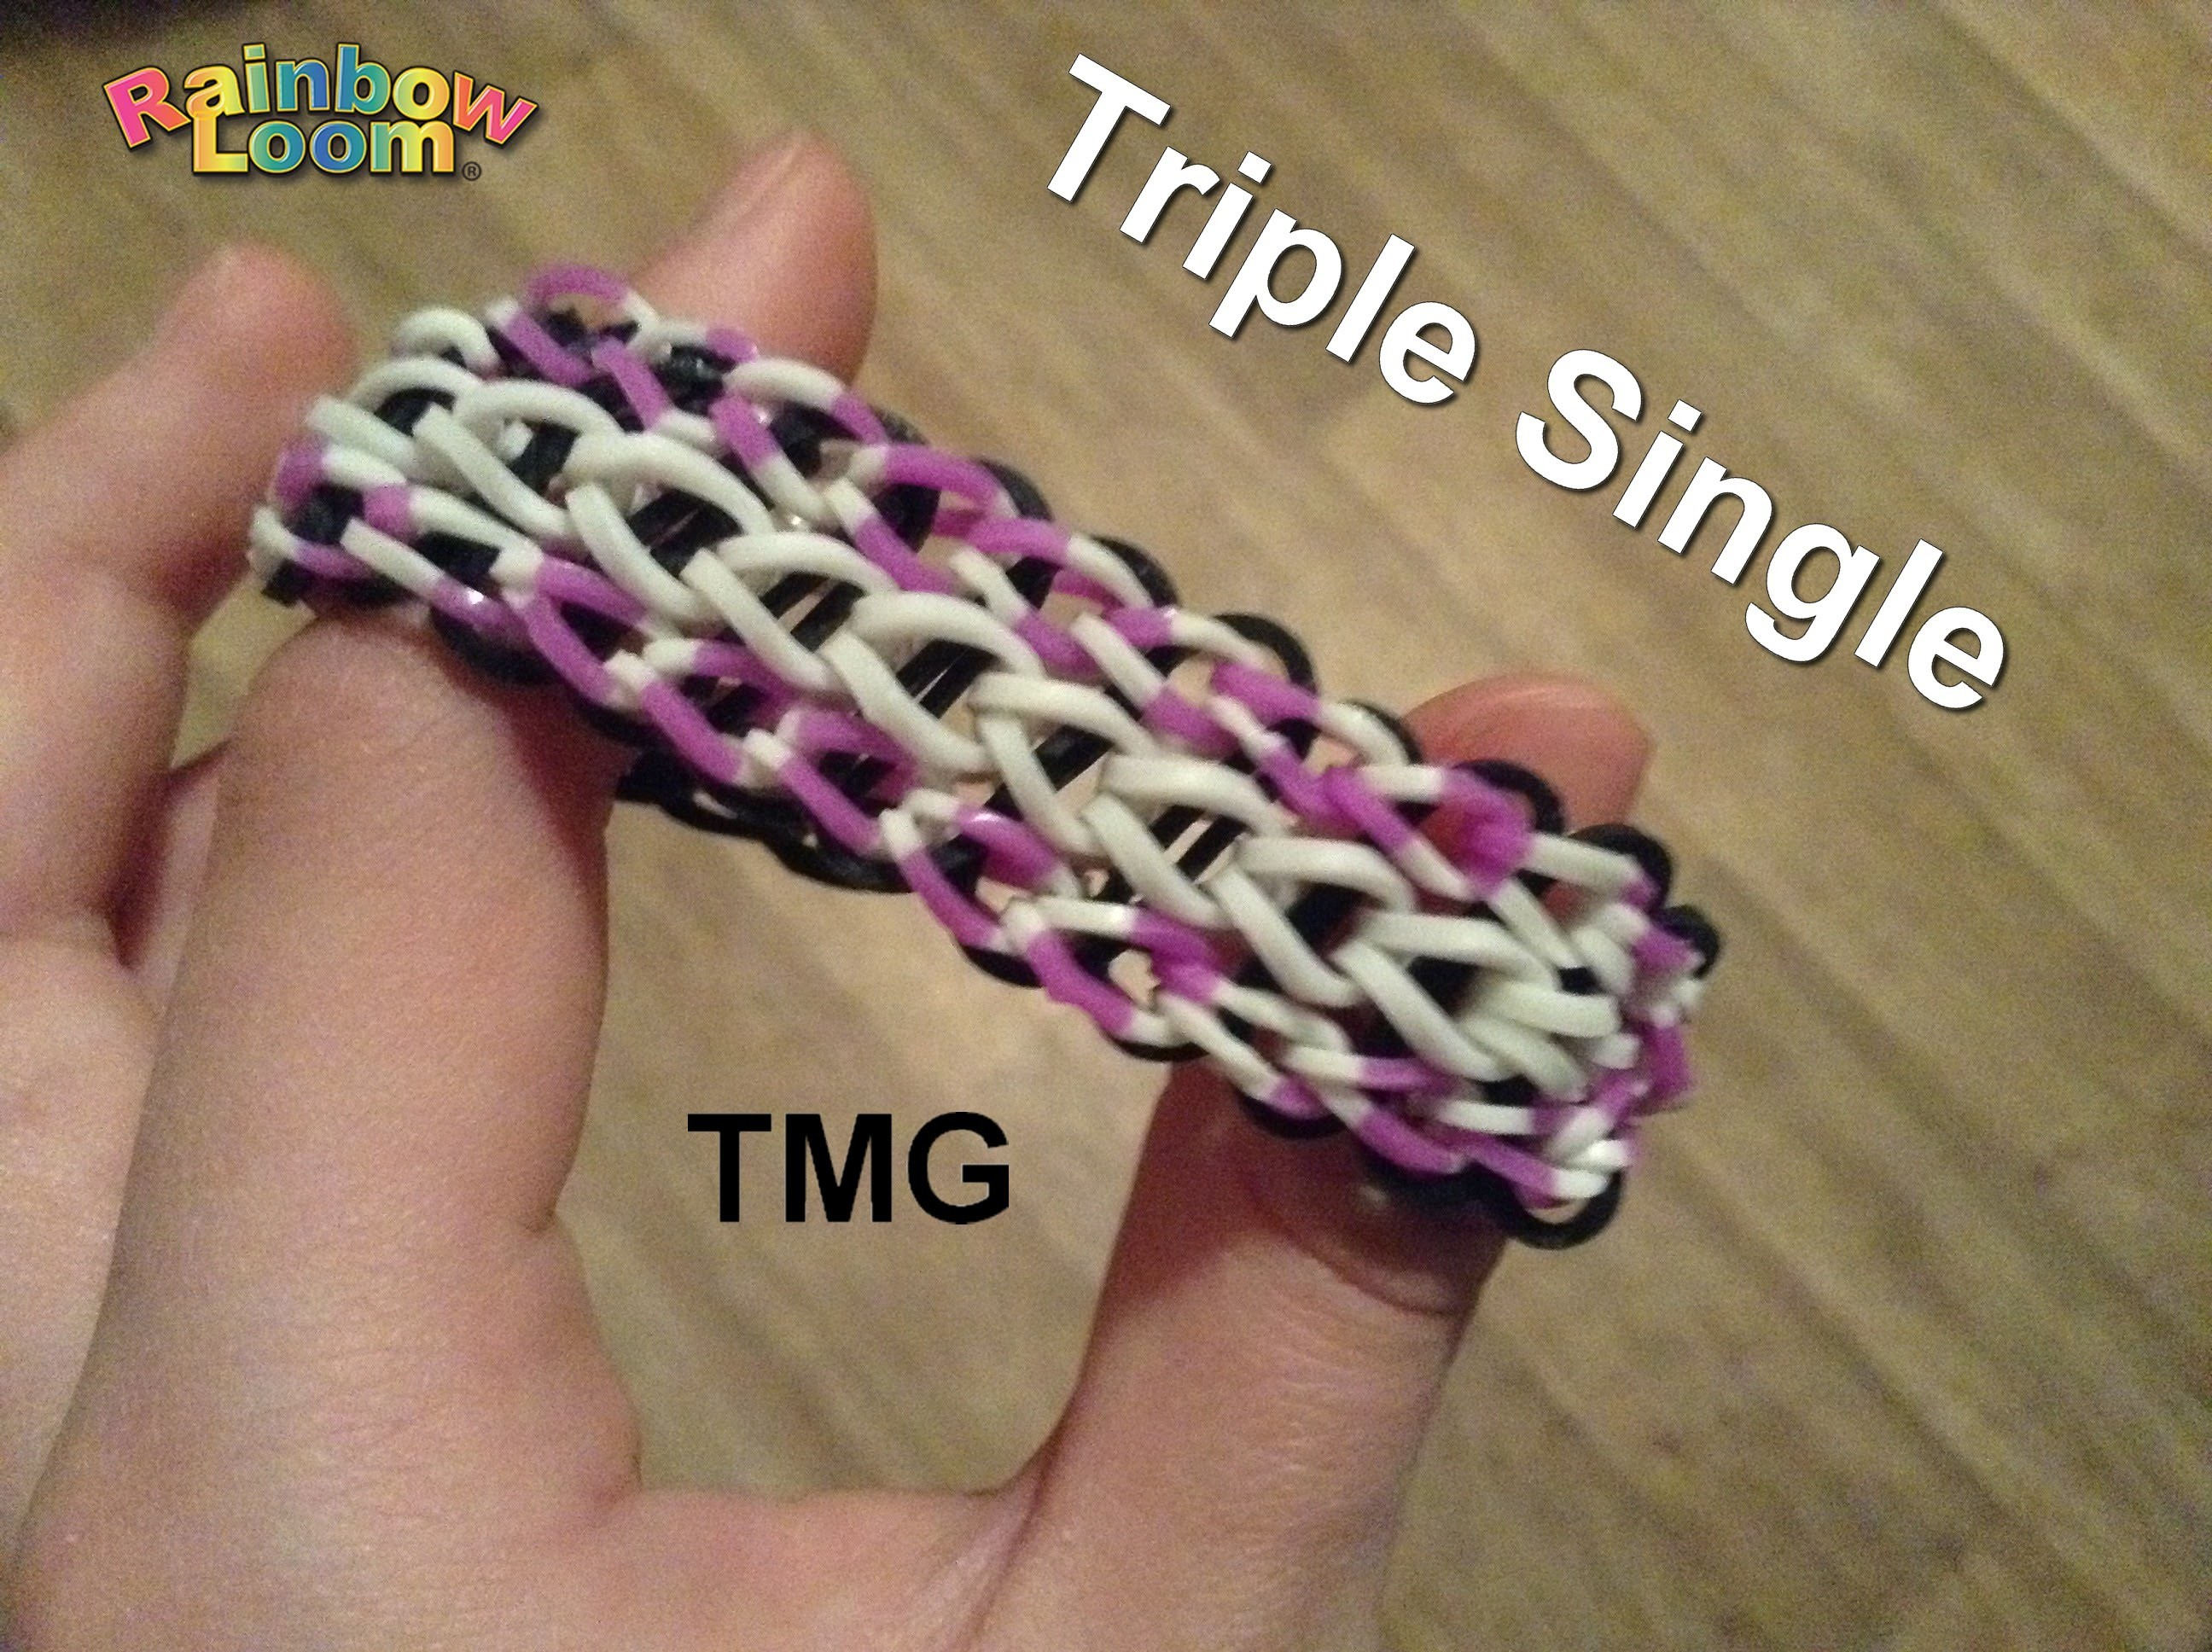 Rainbow Loom - Triple Single - Ája